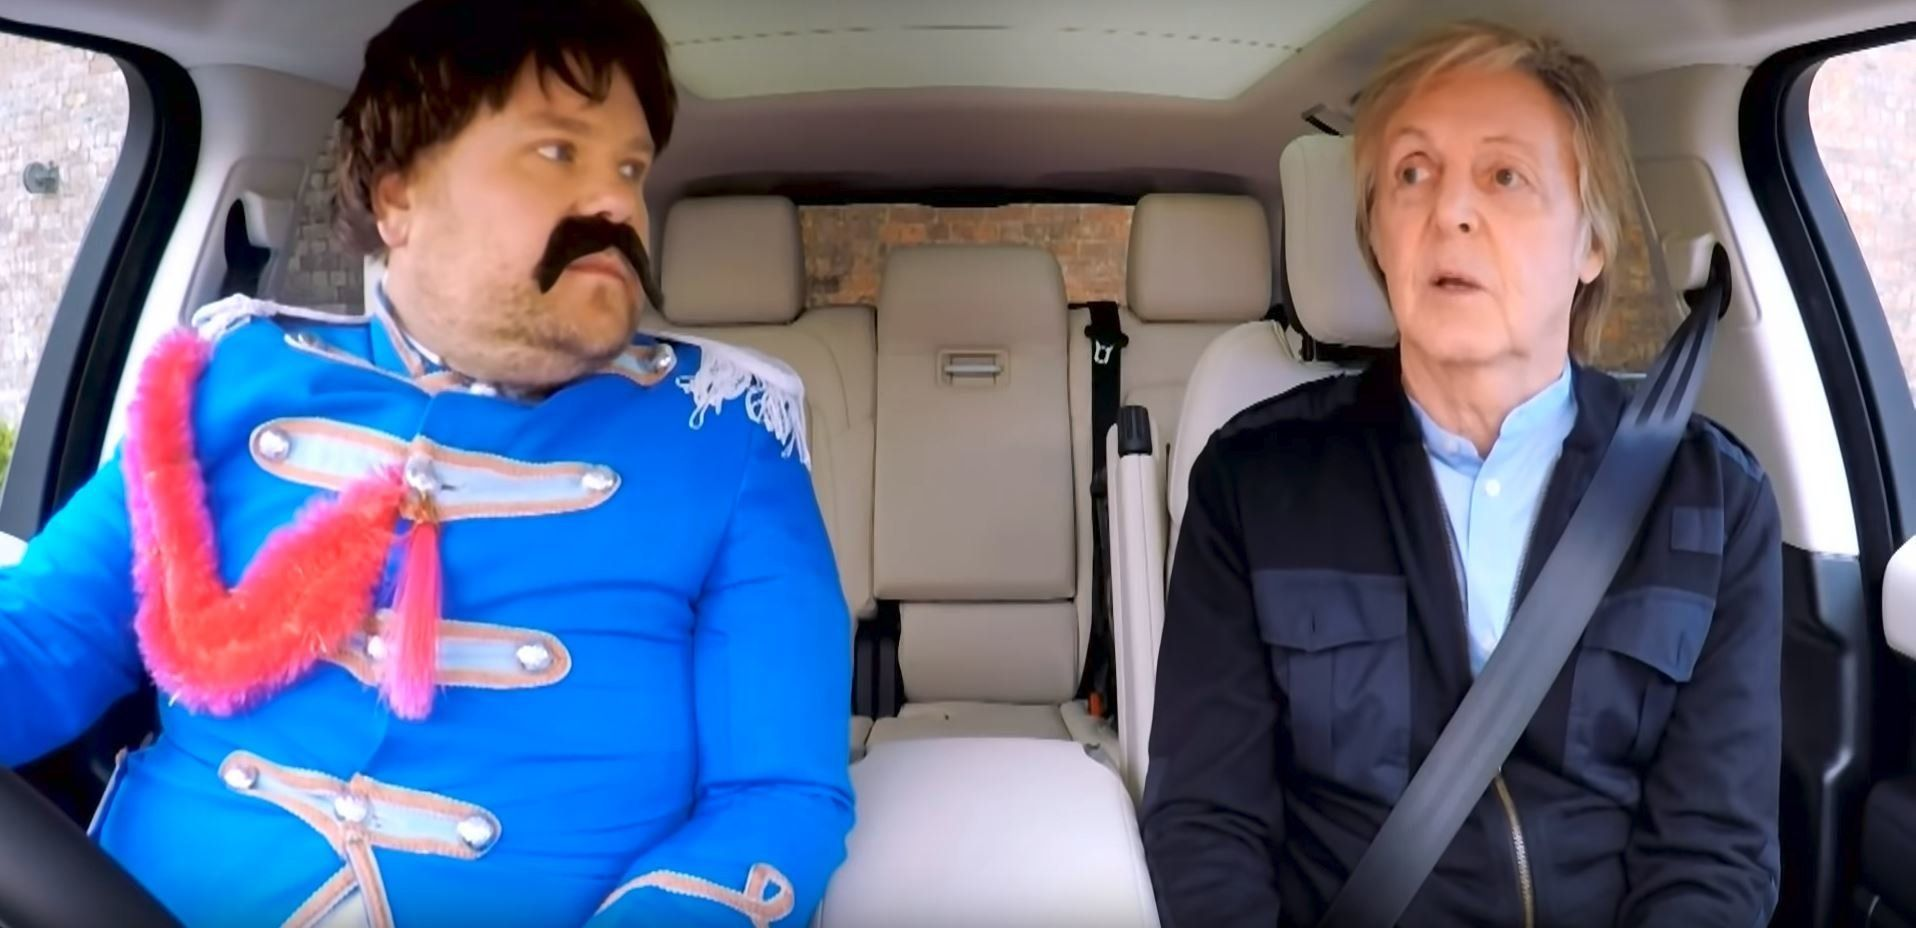 Paul McCartney Jumps In James Corden's Car For 'Best Ever' Carpool